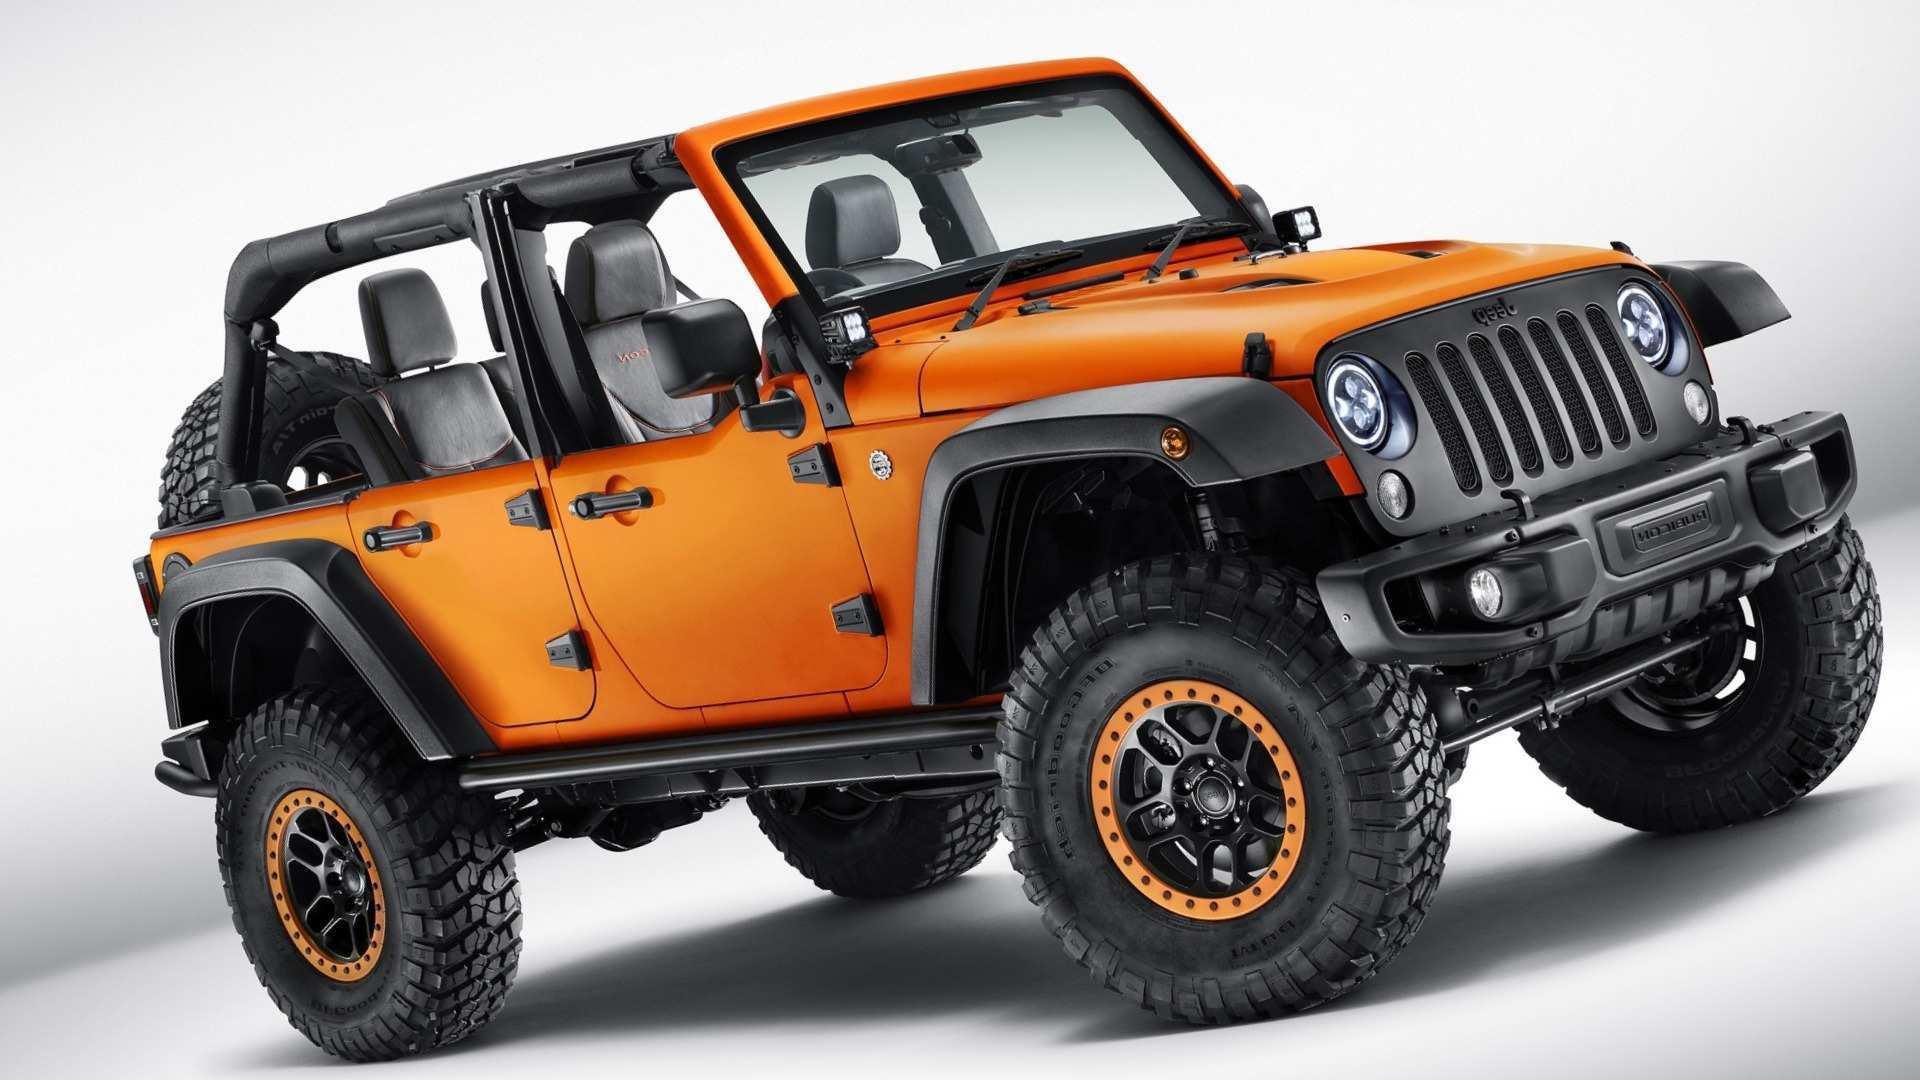 74 Best 2020 Jeep Wrangler Unlimited Rubicon Colors Review